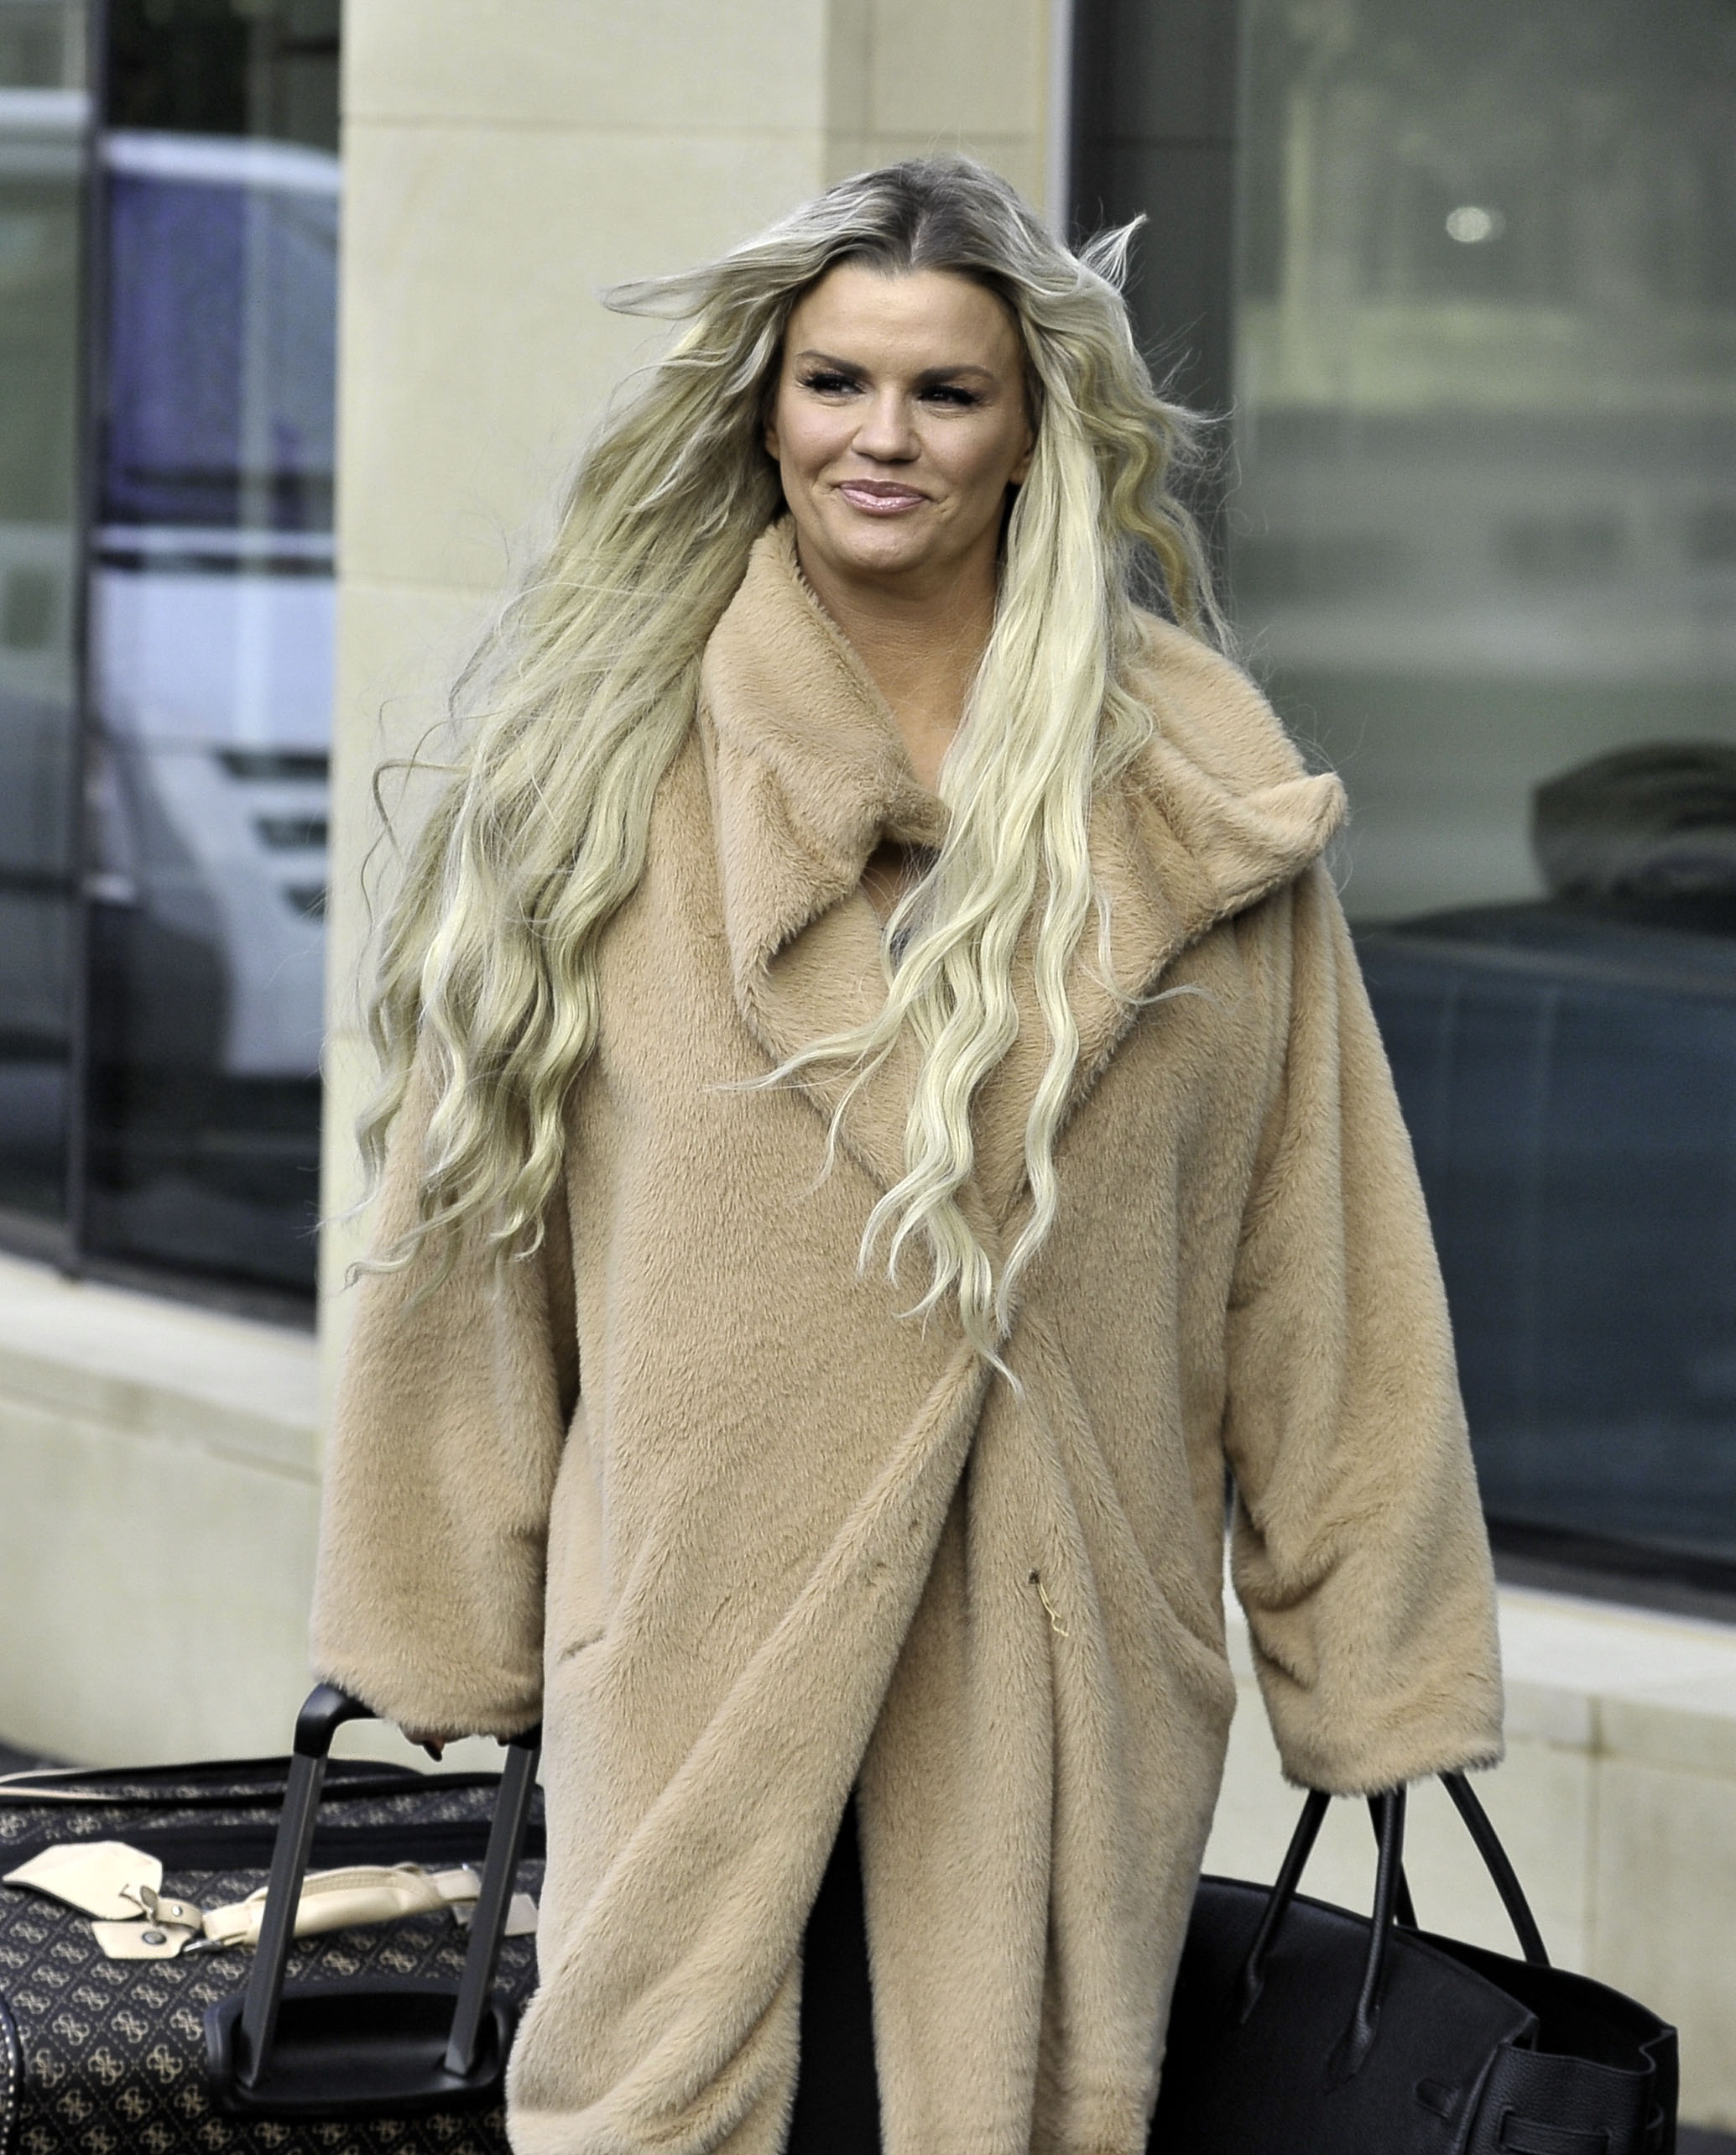 Kerry Katona Pictured Arriving For Her Date With Mystery Guy In Manchester